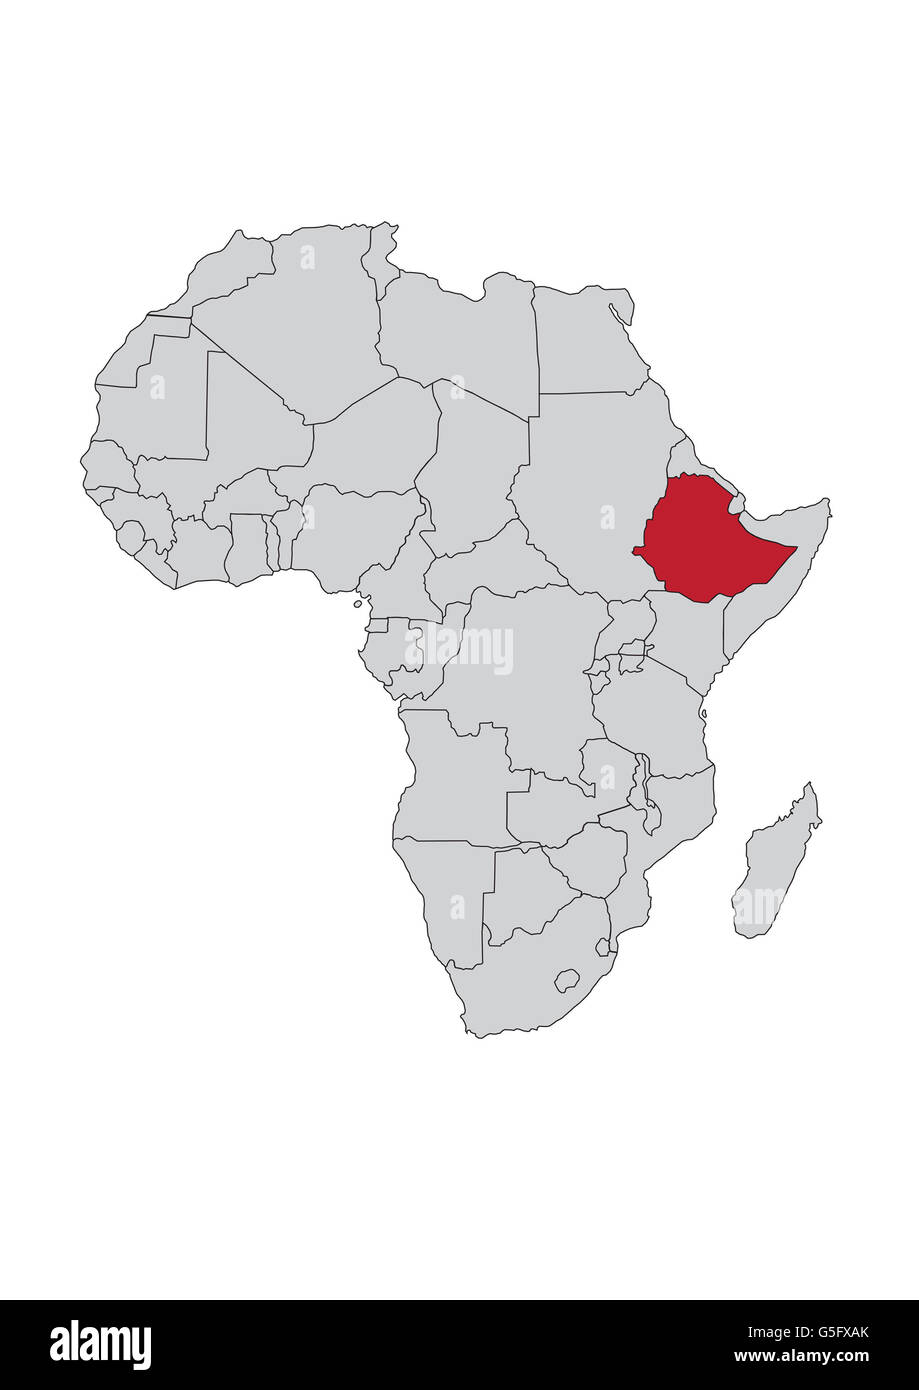 Map Of Ethiopia In Africa.Map Of Africa Ethiopia Stock Photo 106685451 Alamy